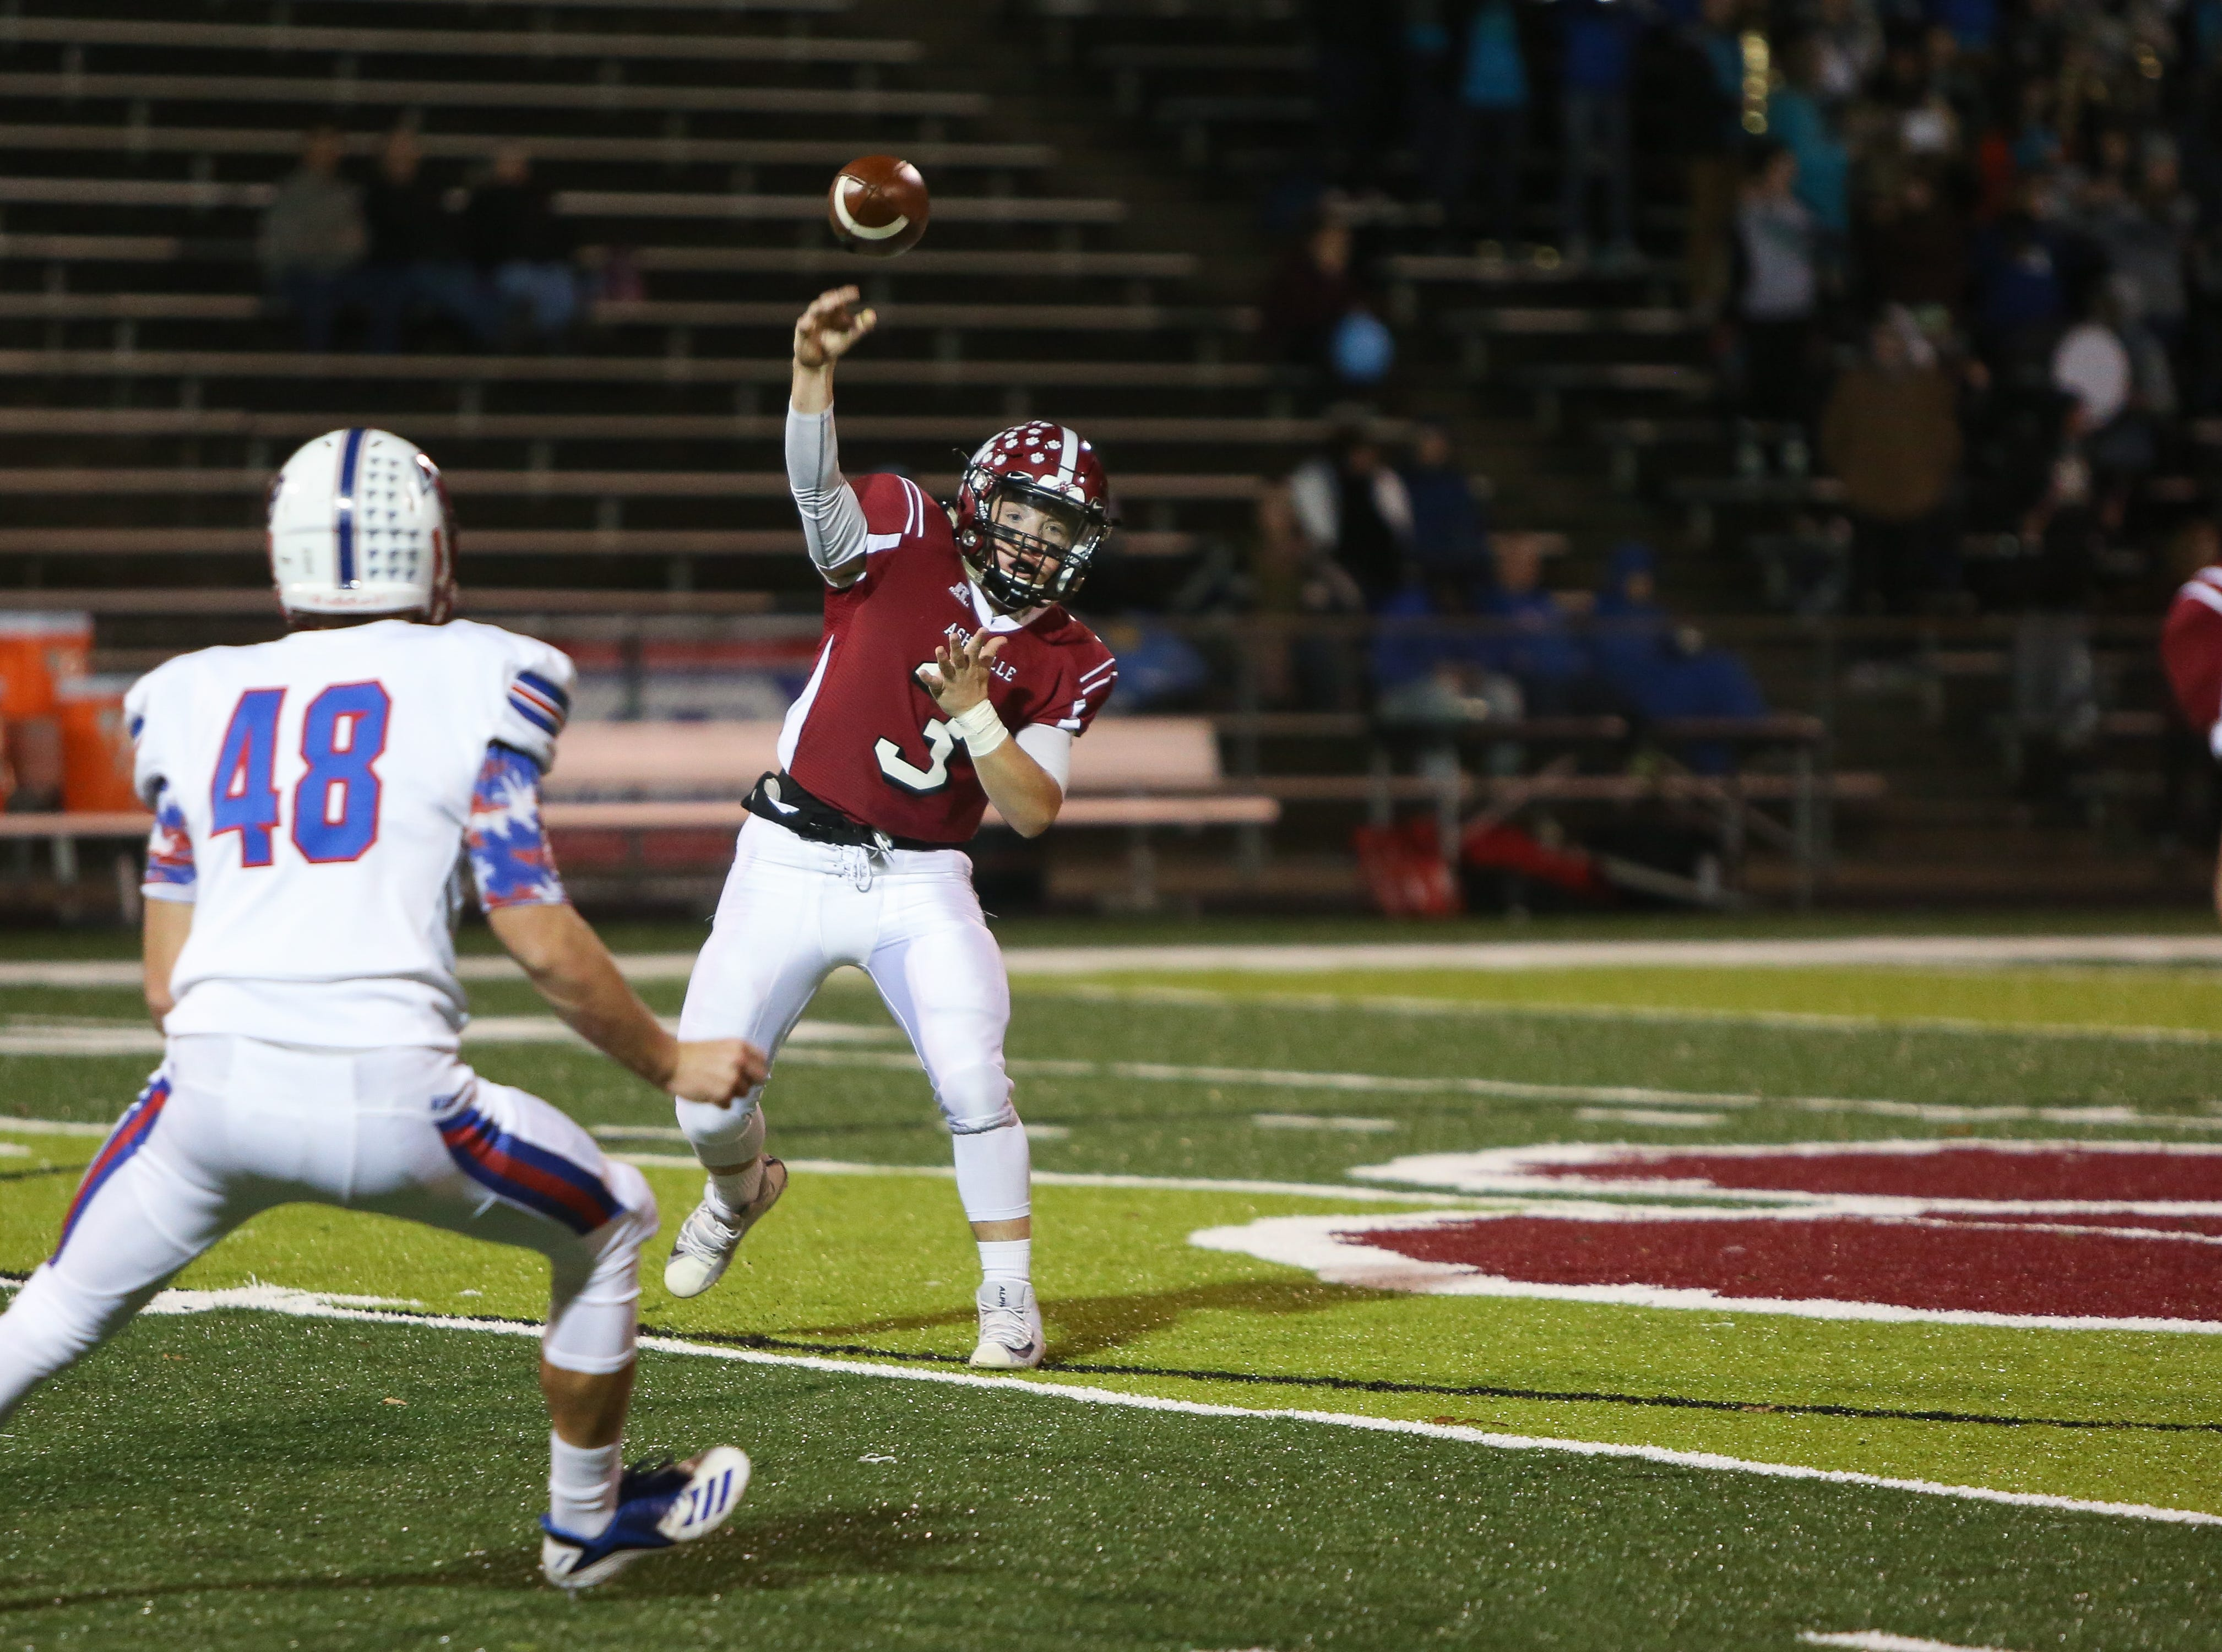 Asheville quarterback Three Hillier throws the ball as Asheville faced off against West Henderson on Nov. 2, 2018, at Asheville.  The Cougars took the win with a final score of 24-13.